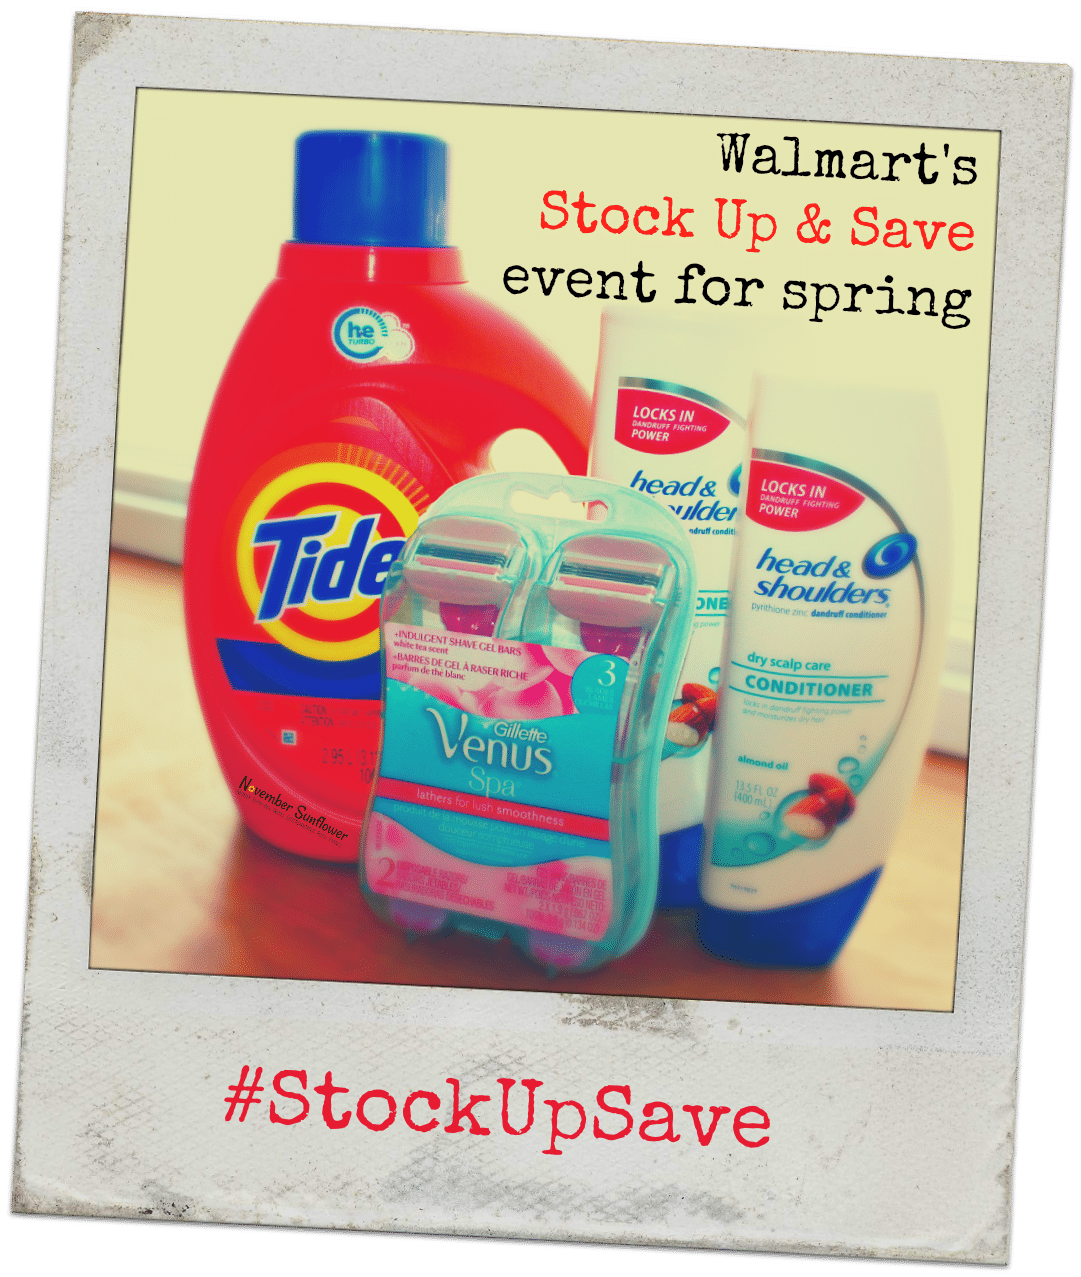 Walmart Stock Up and Save event for Spring [spons]